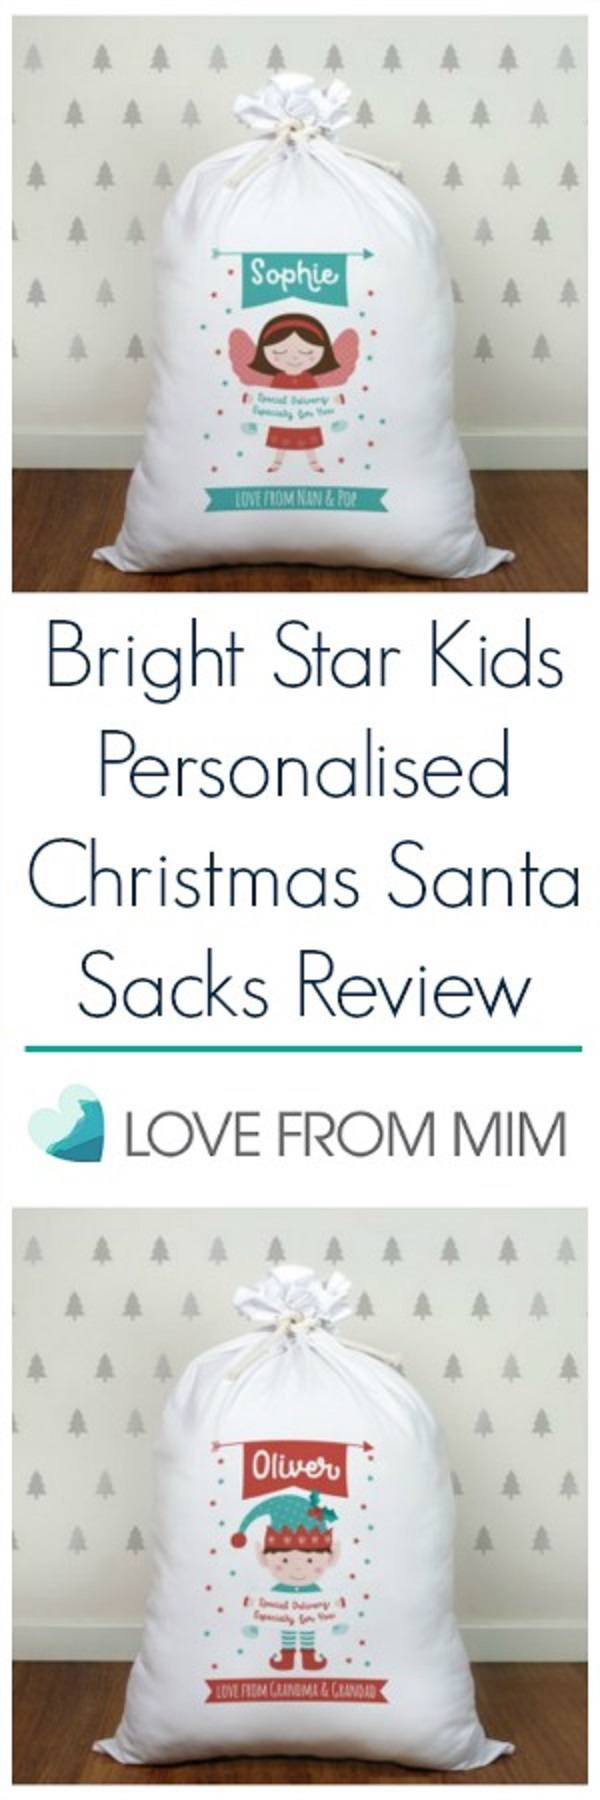 If you're looking for a personalized santa sack, check out my Bright Star Kids Personalised Santa Sacks Review - Love from Mim #christmassack #santasack #santasacks #christmassacks #personalizedsantasack #personalisedsantasack